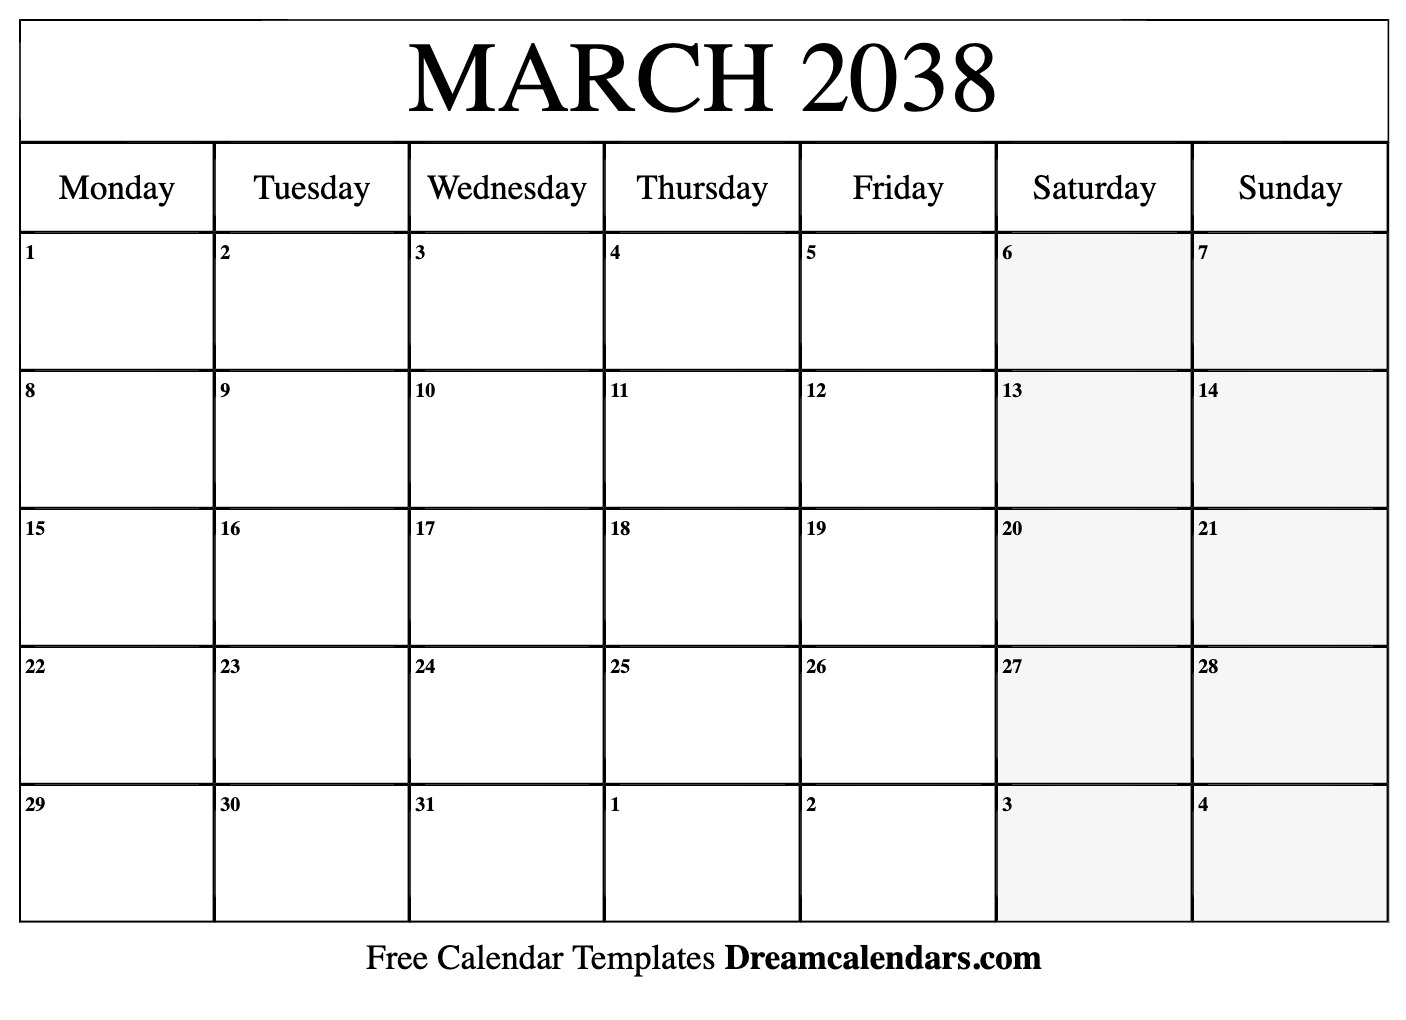 picture about Printable March Calendar known as Printable March 2038 Calendar